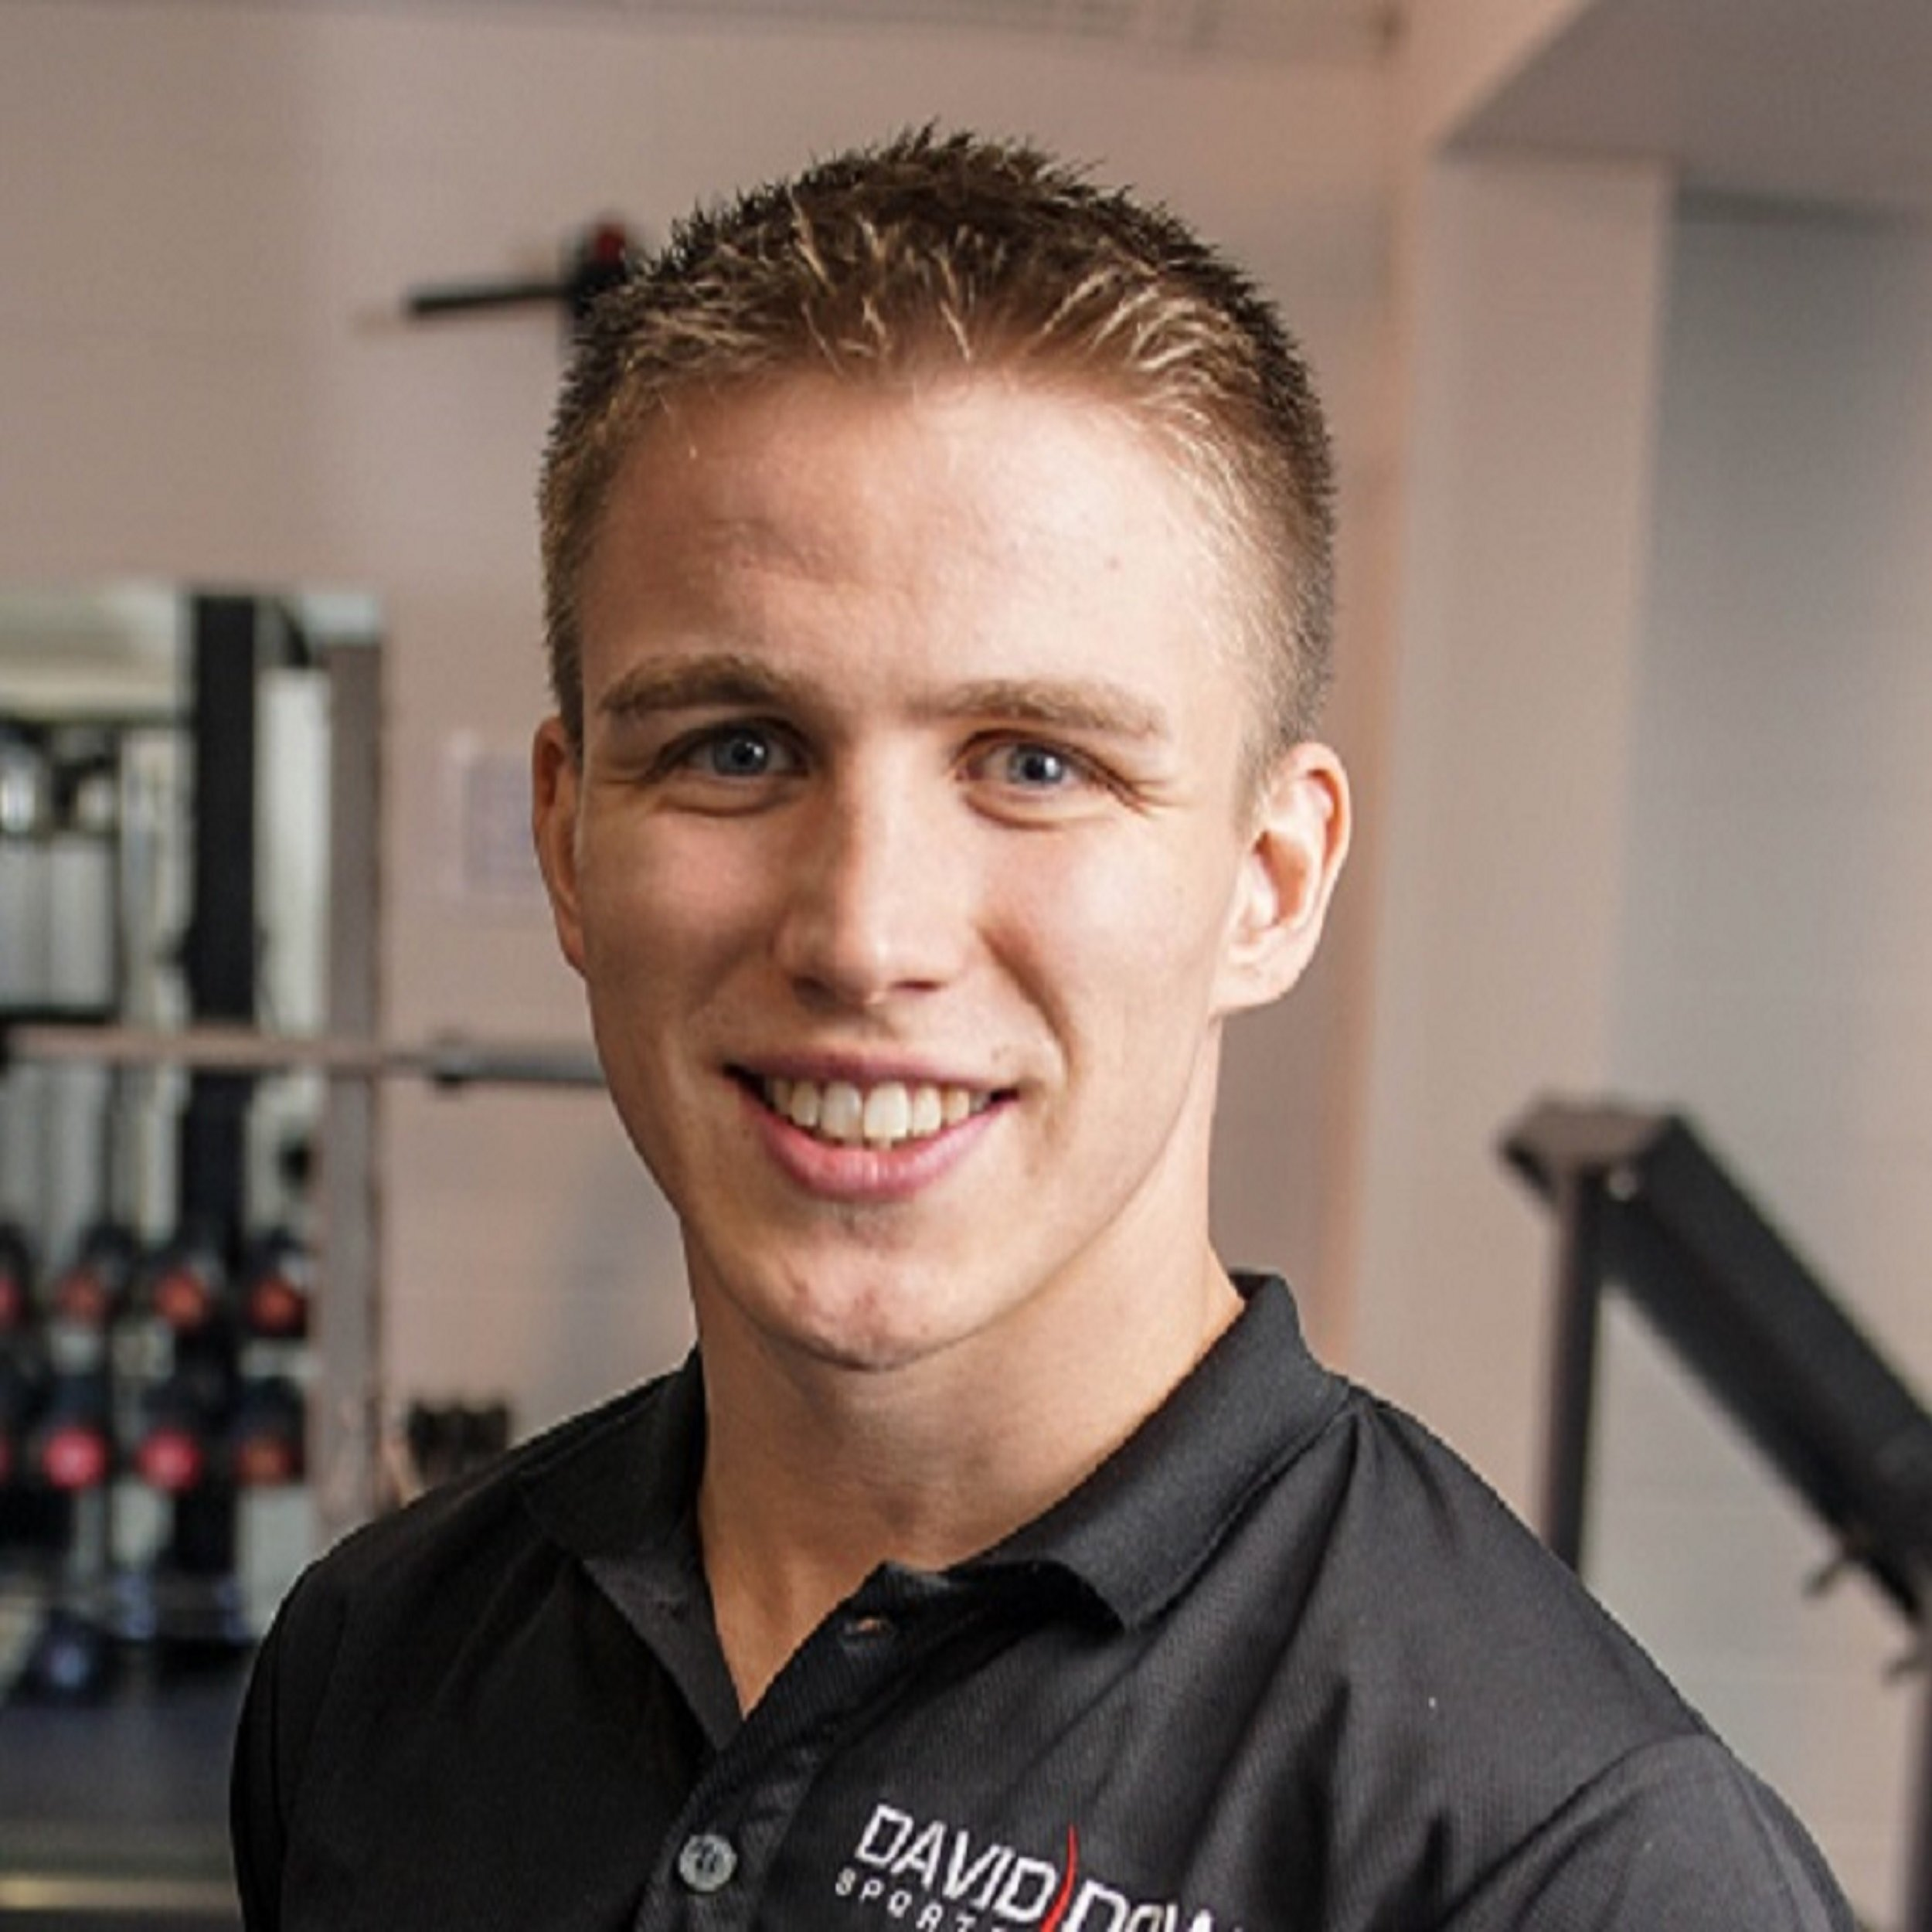 David Downs - Sport Therapist BSc   David specialises in Sports Massage, Medical Acupuncture & Injury Rehabilitation. Working with muscular skeletal conditions he aims to restore the body to full functional fitness, in a safe & effective manner.  He has a wide range of experience, ranging from top athletes, film stars, sports clubs.